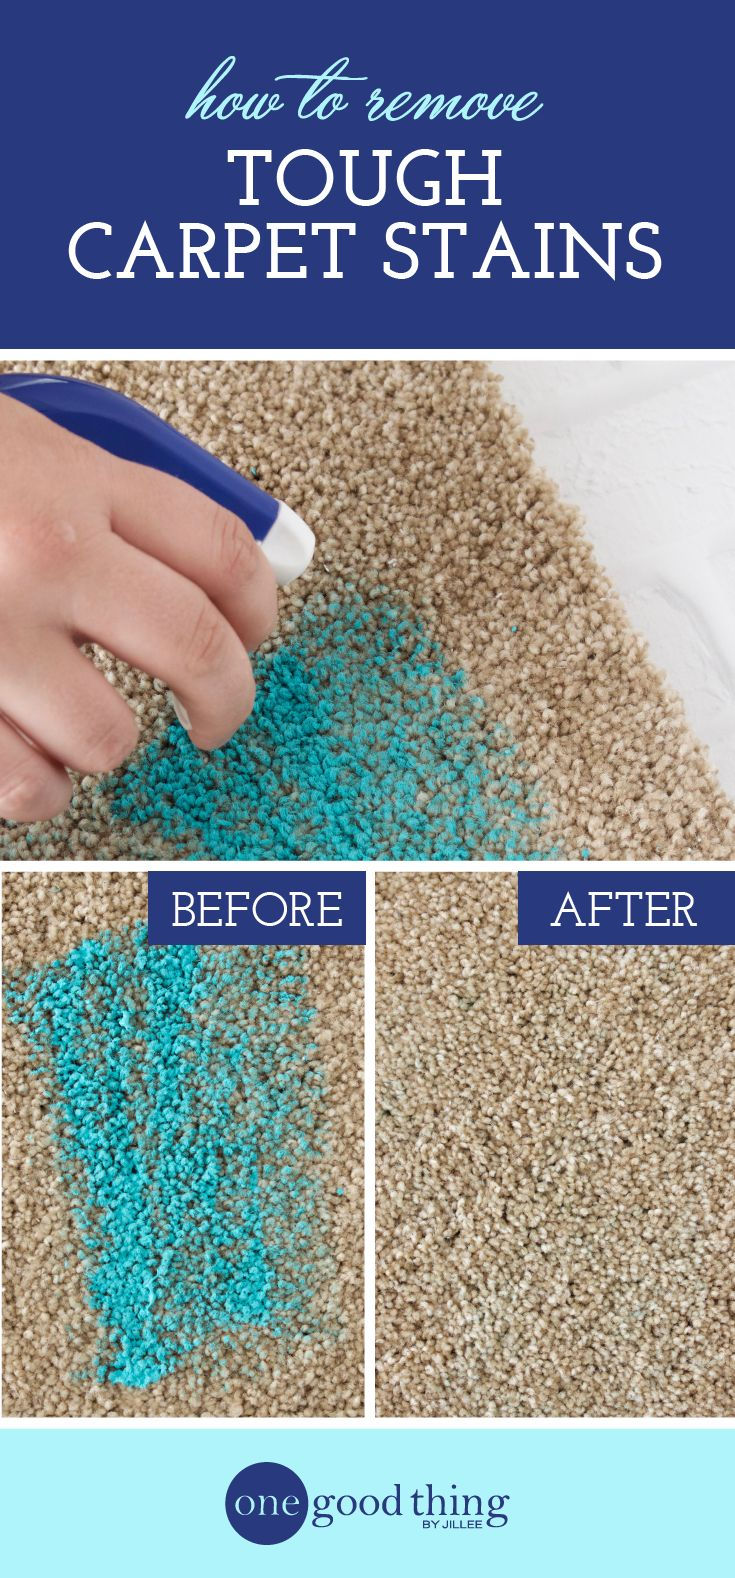 This Is The Best Way To Remove Tough Carpet Stains - One Good Thing by Jillee